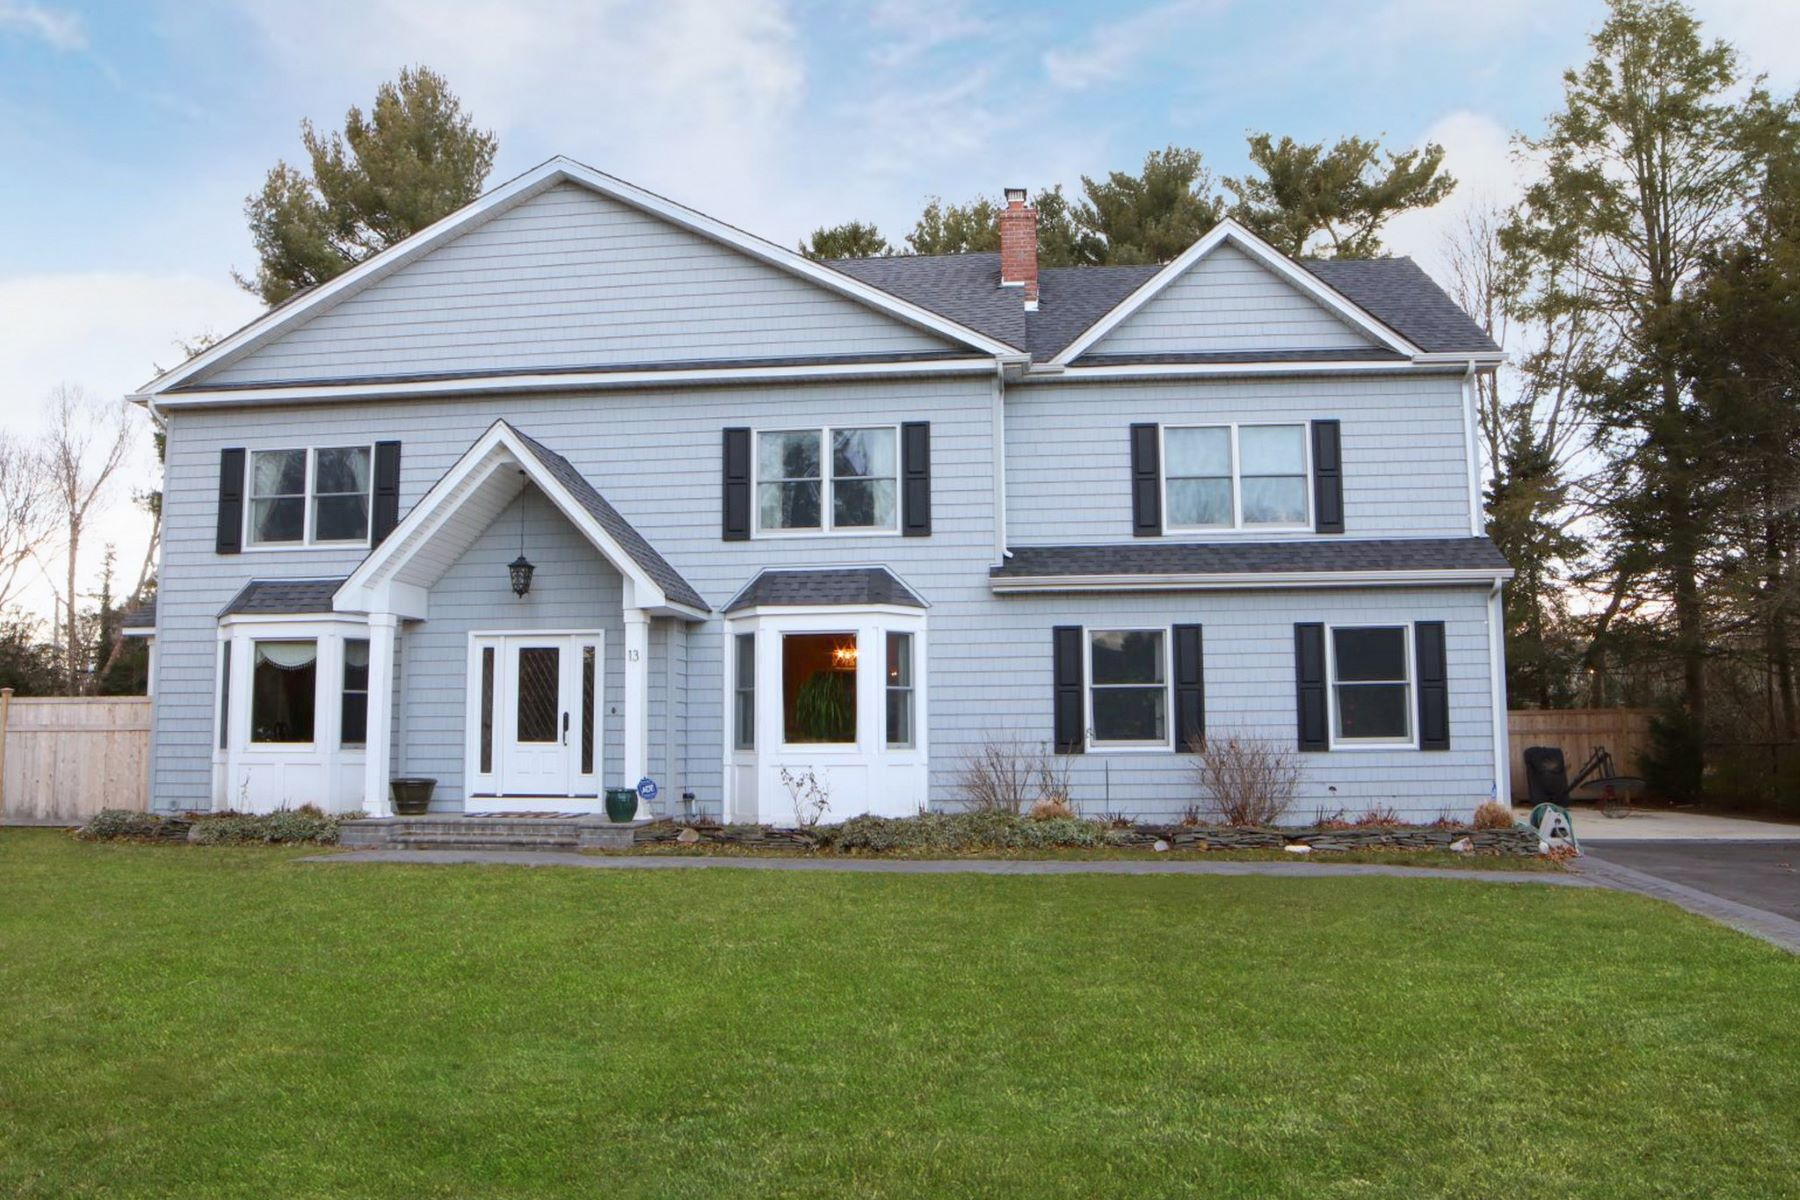 Single Family Homes for Active at Huntington 13 Oakridge Drive Huntington, New York 11743 United States